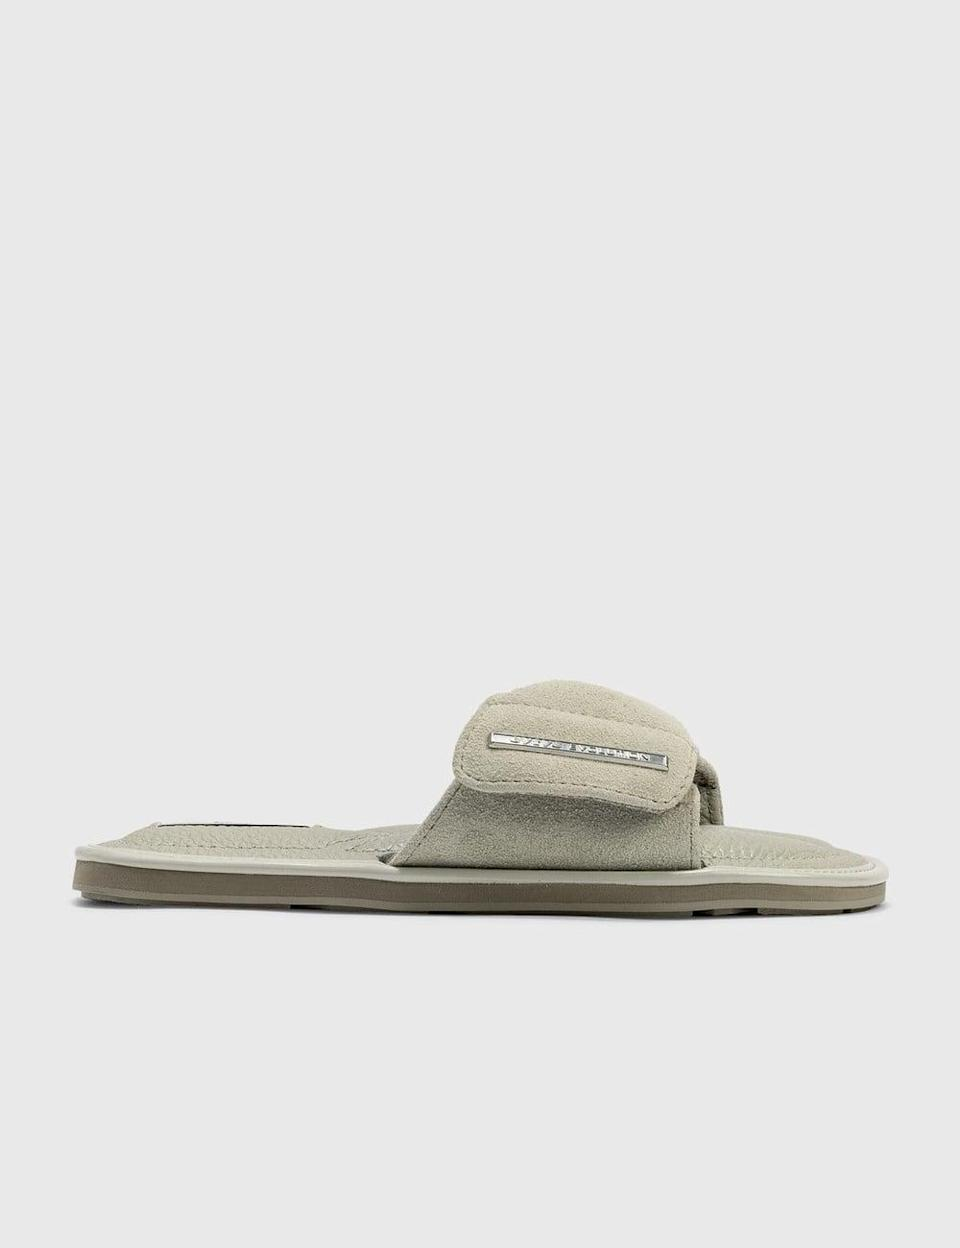 "<p>These <span>Eytys Belaggio Dust Sandals</span> ($165) are the ideal companion to <a href=""https://www.popsugar.com/fashion/bike-short-outfit-ideas-48265536"" class=""link rapid-noclick-resp"" rel=""nofollow noopener"" target=""_blank"" data-ylk=""slk:biker shorts"">biker shorts</a>.</p>"